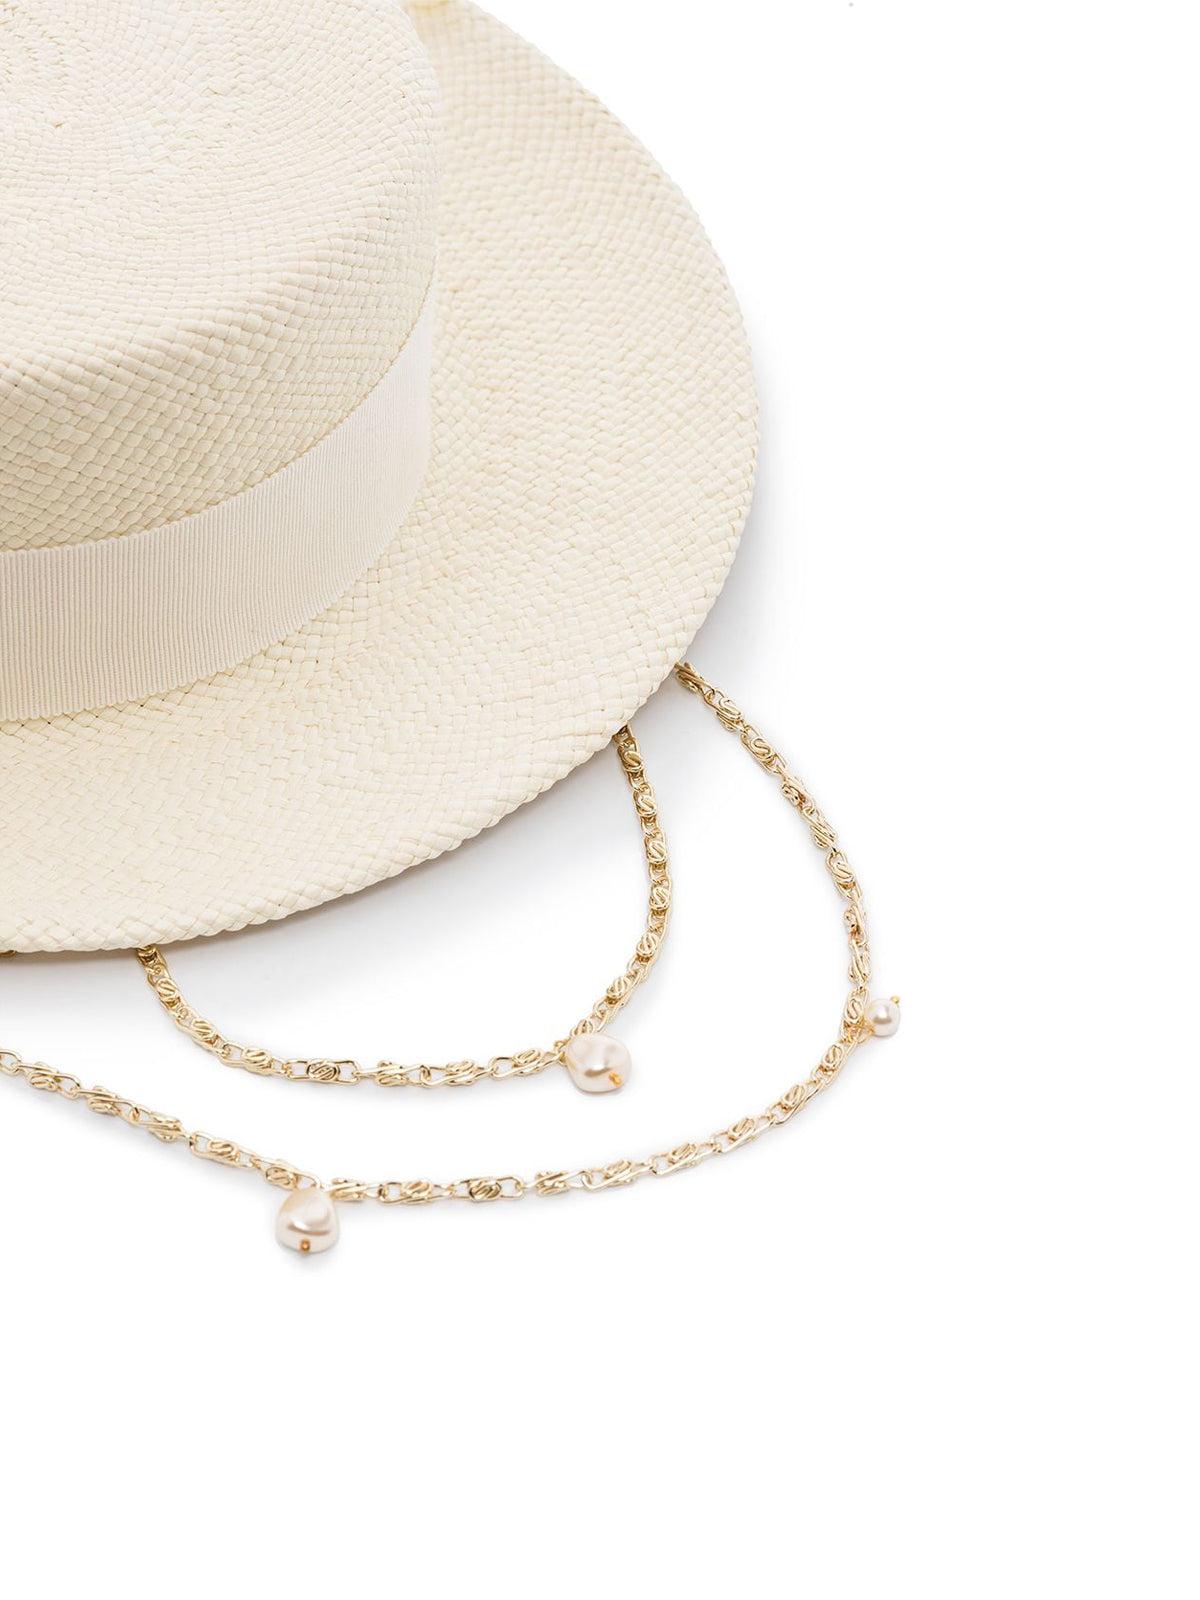 chain strap boater hat